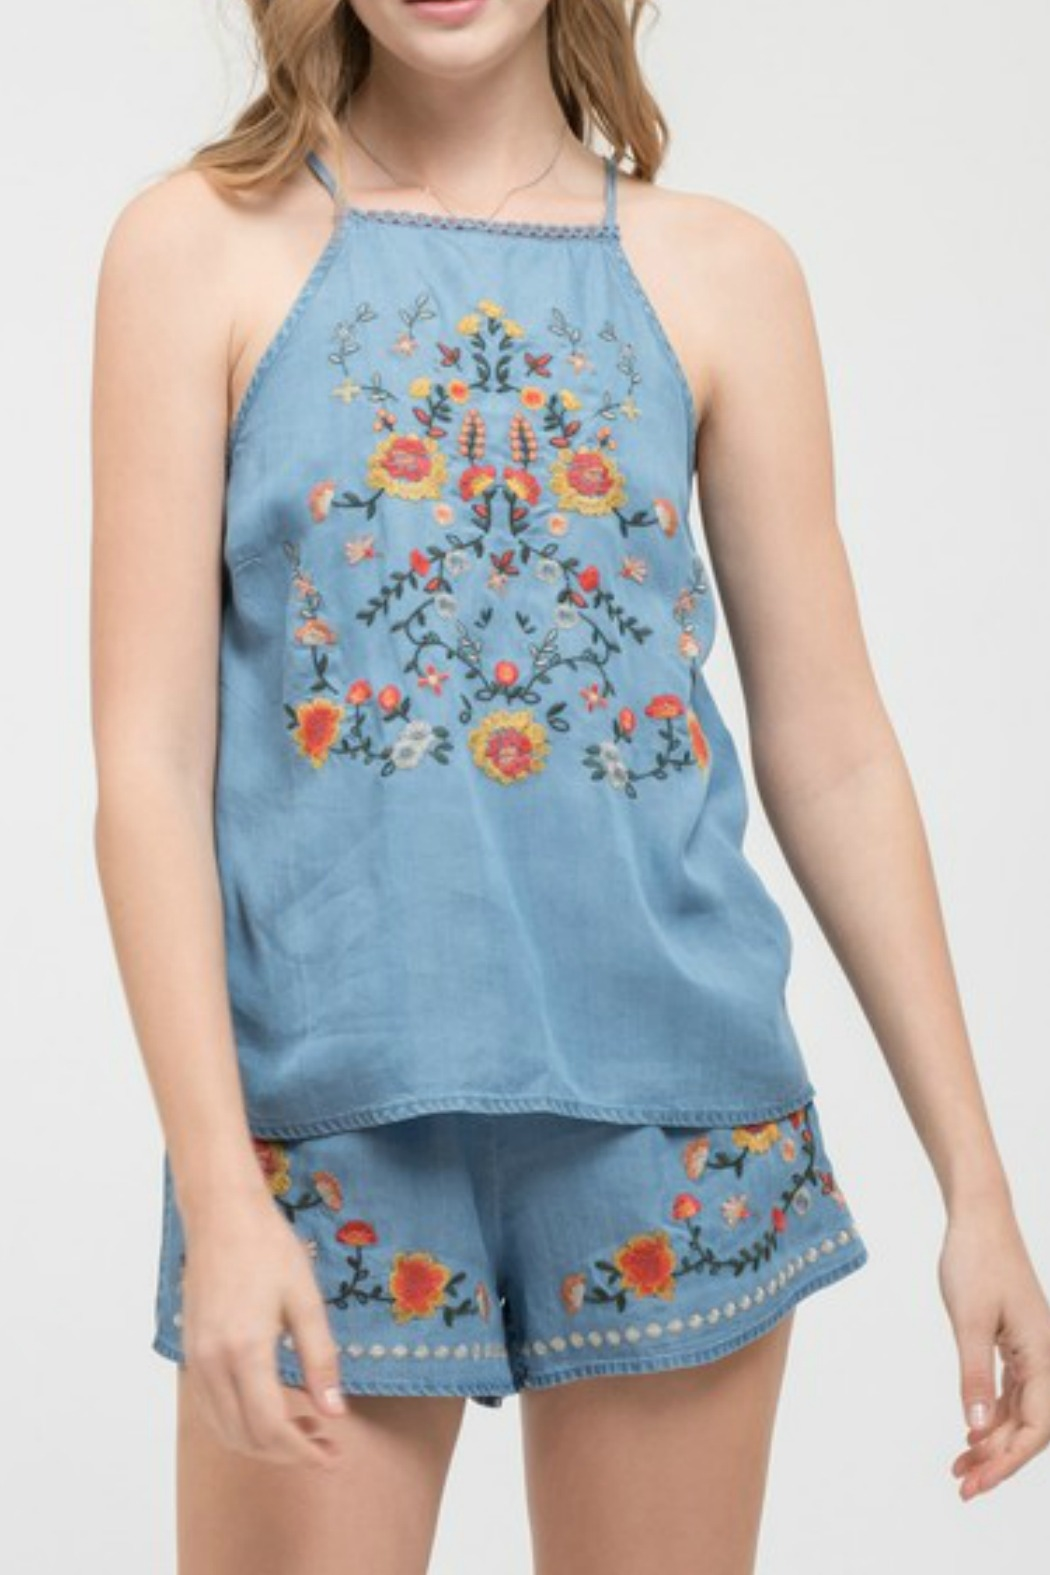 Blu Pepper Floral Embroidered Top - Main Image